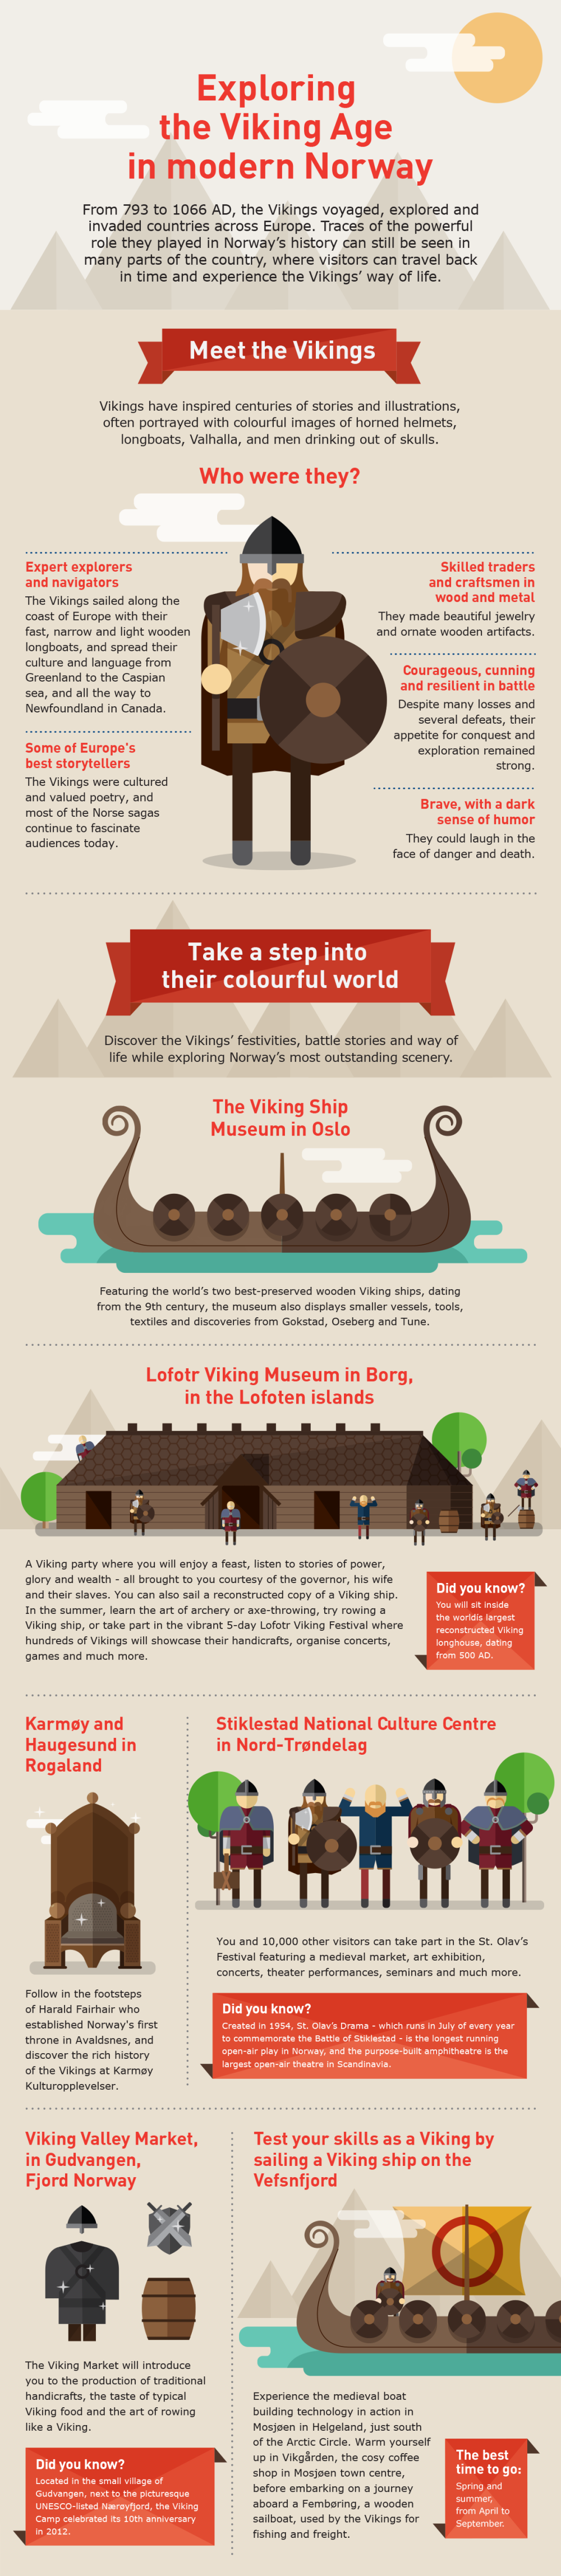 Infographic with various information about the Vikings